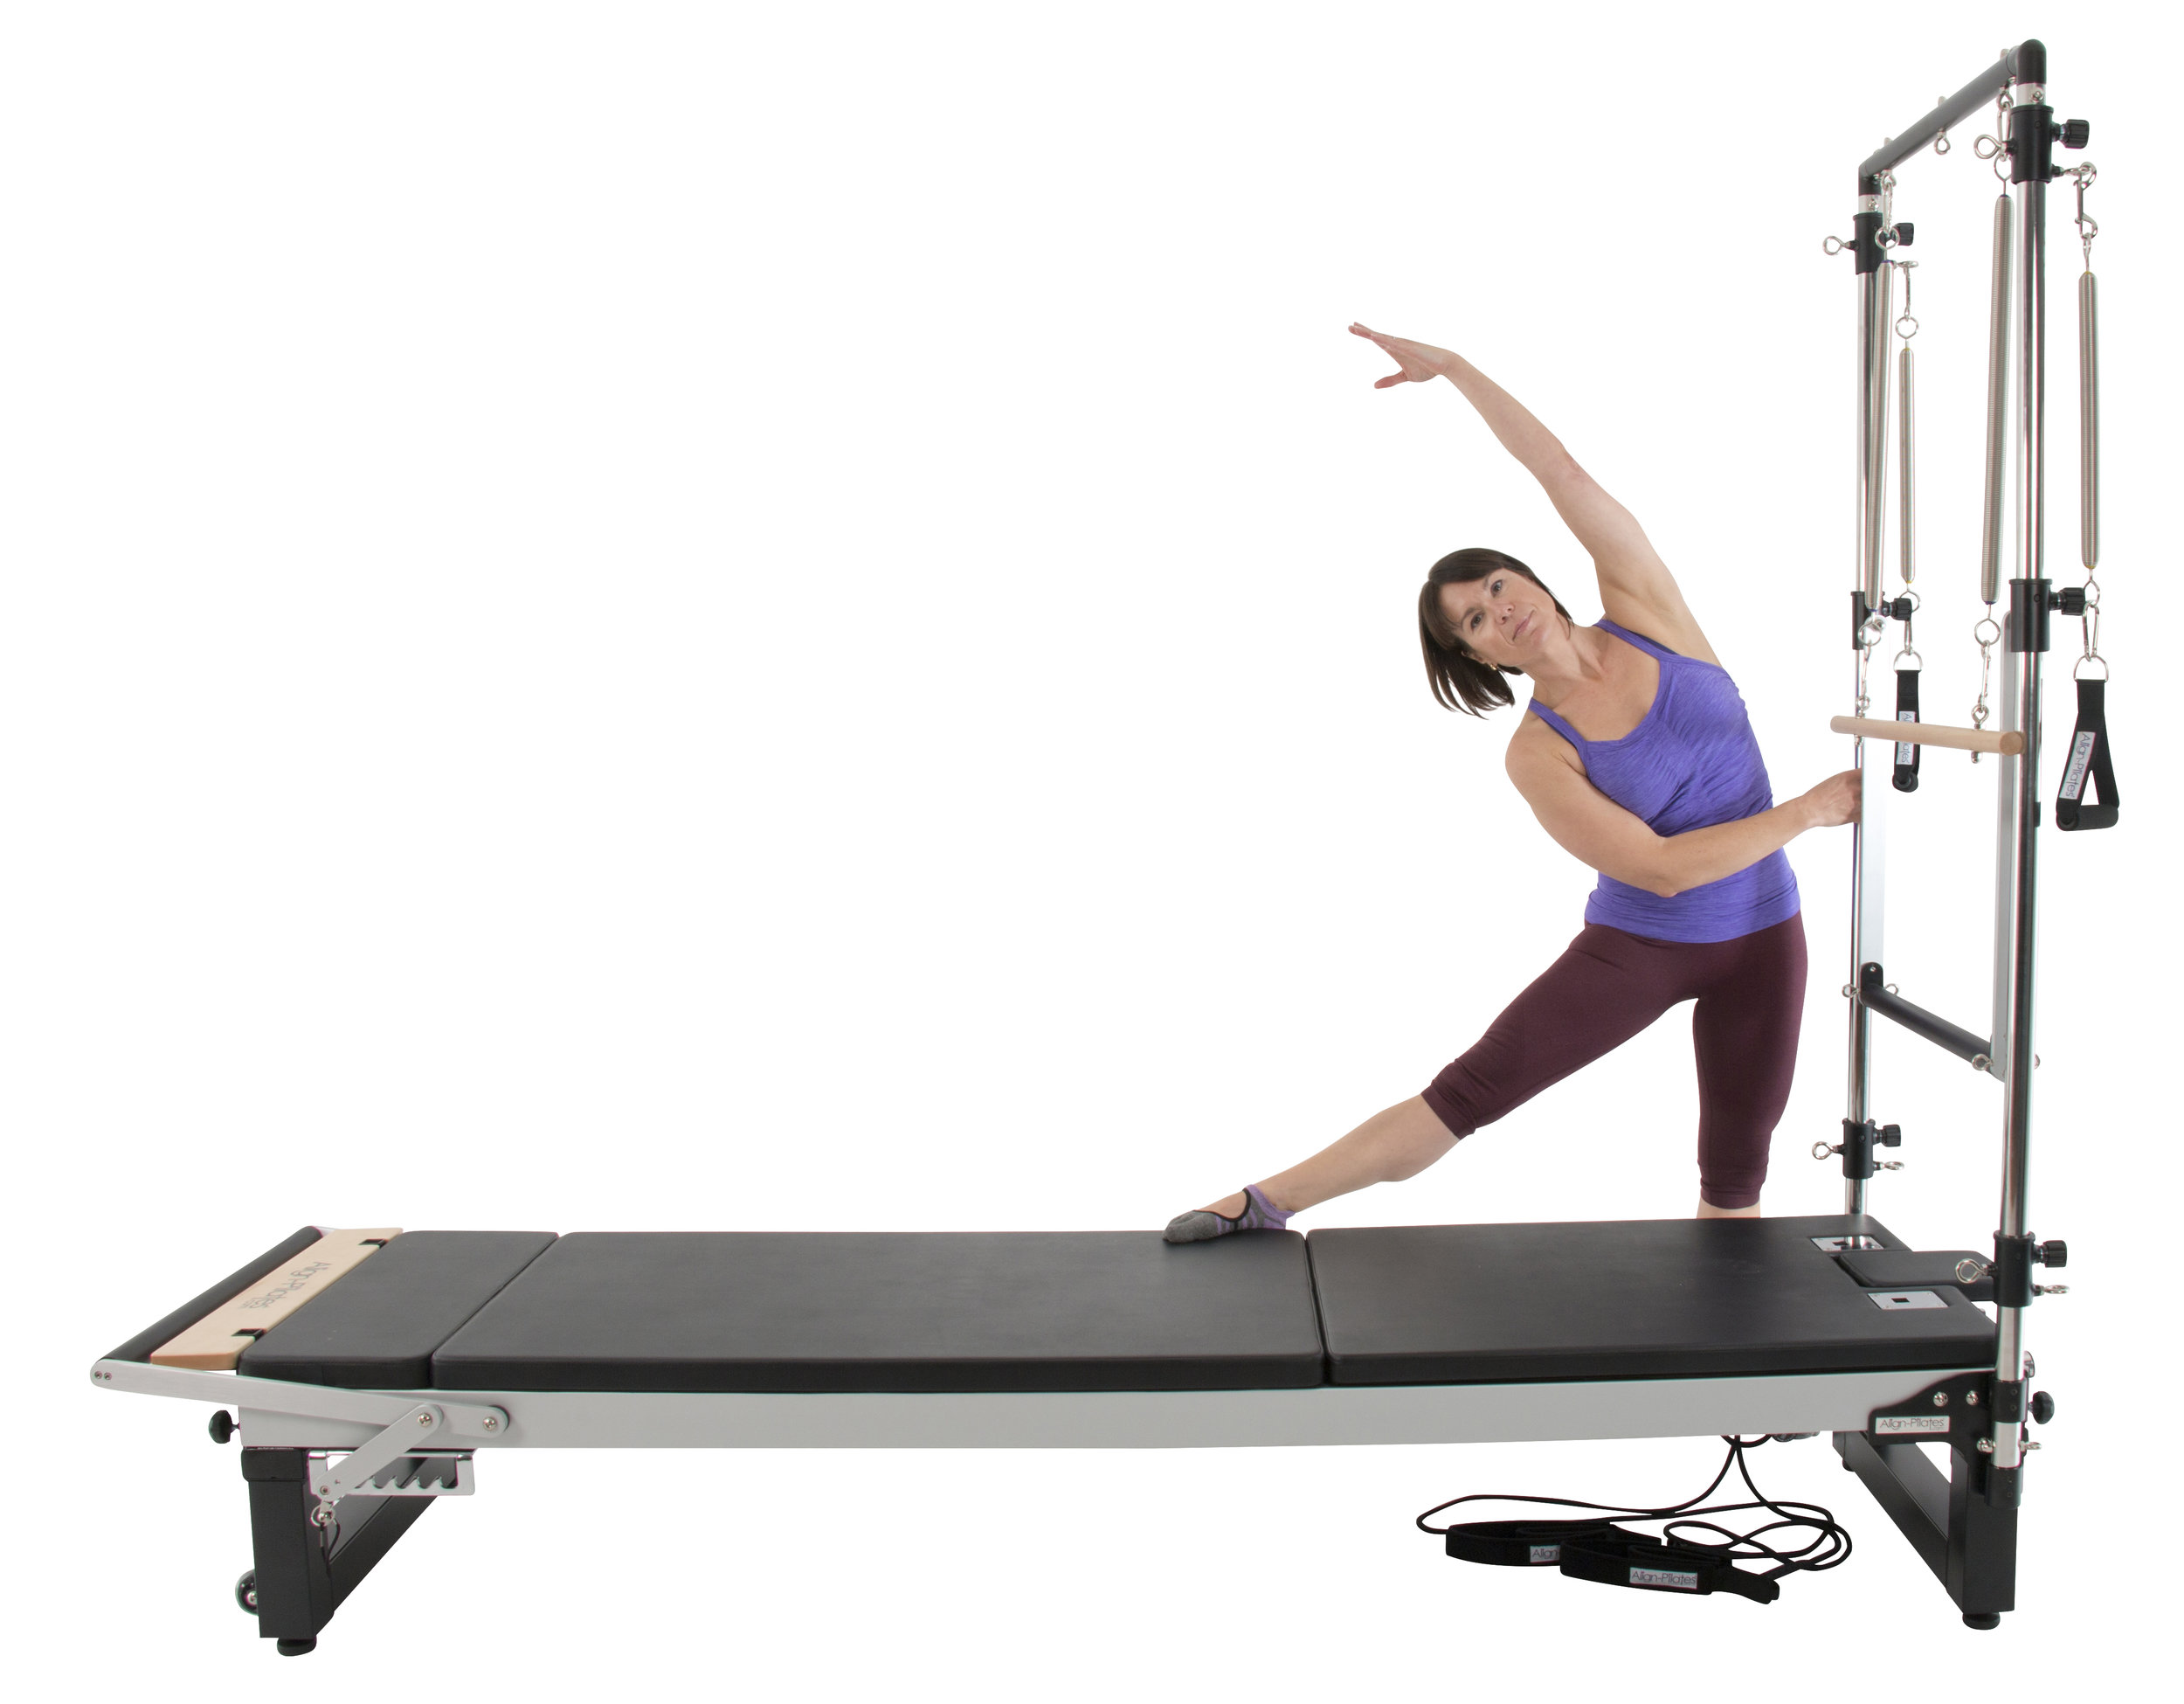 Align A2R2 studio pilates reformer with extension legs and mattress extension